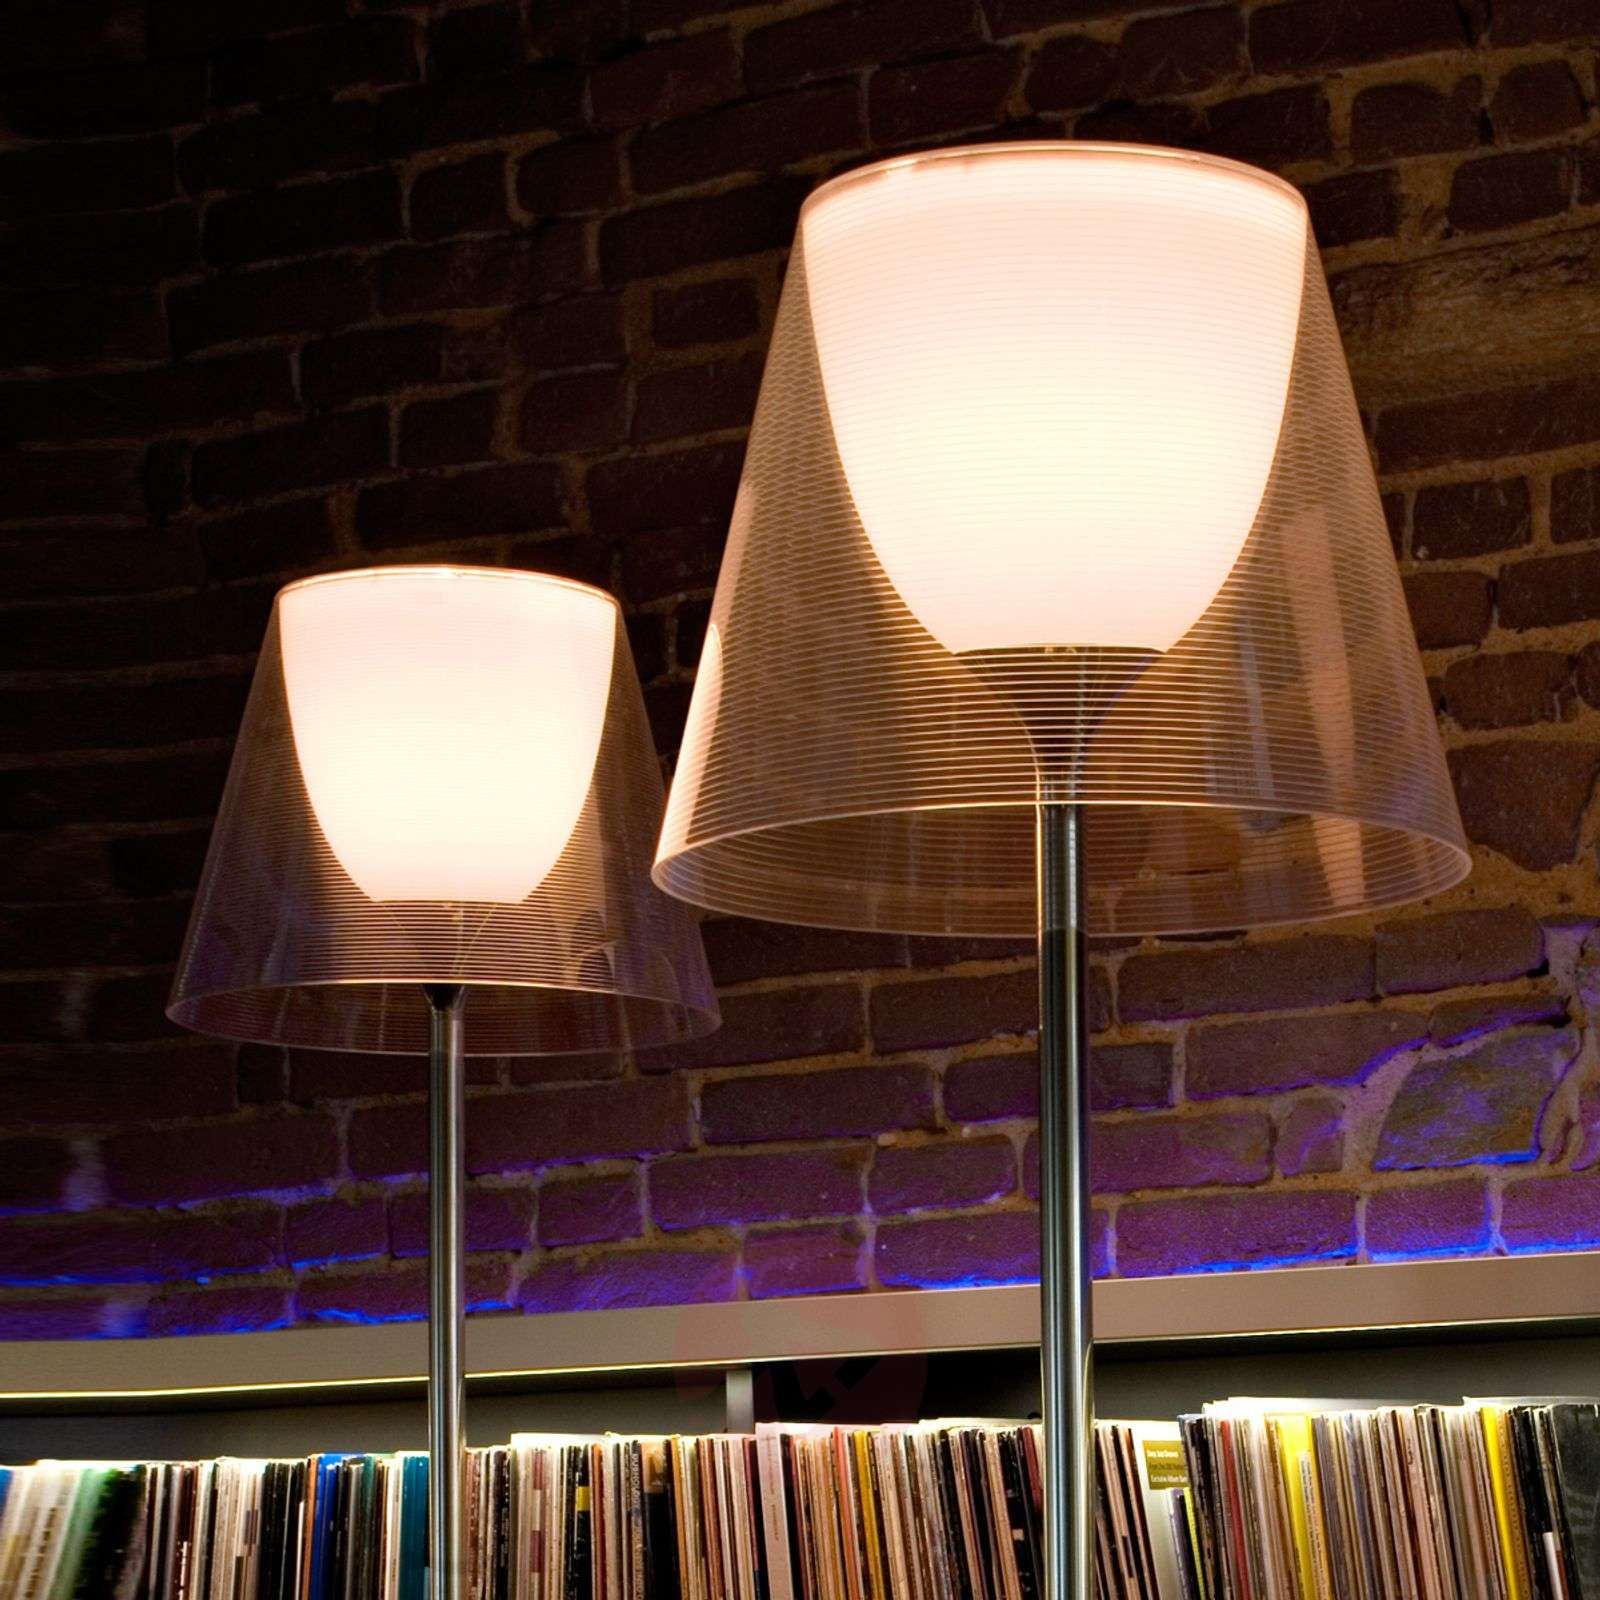 Lampadaire KTRIBE F2 by FLOS aspect moderne-3510134X-05